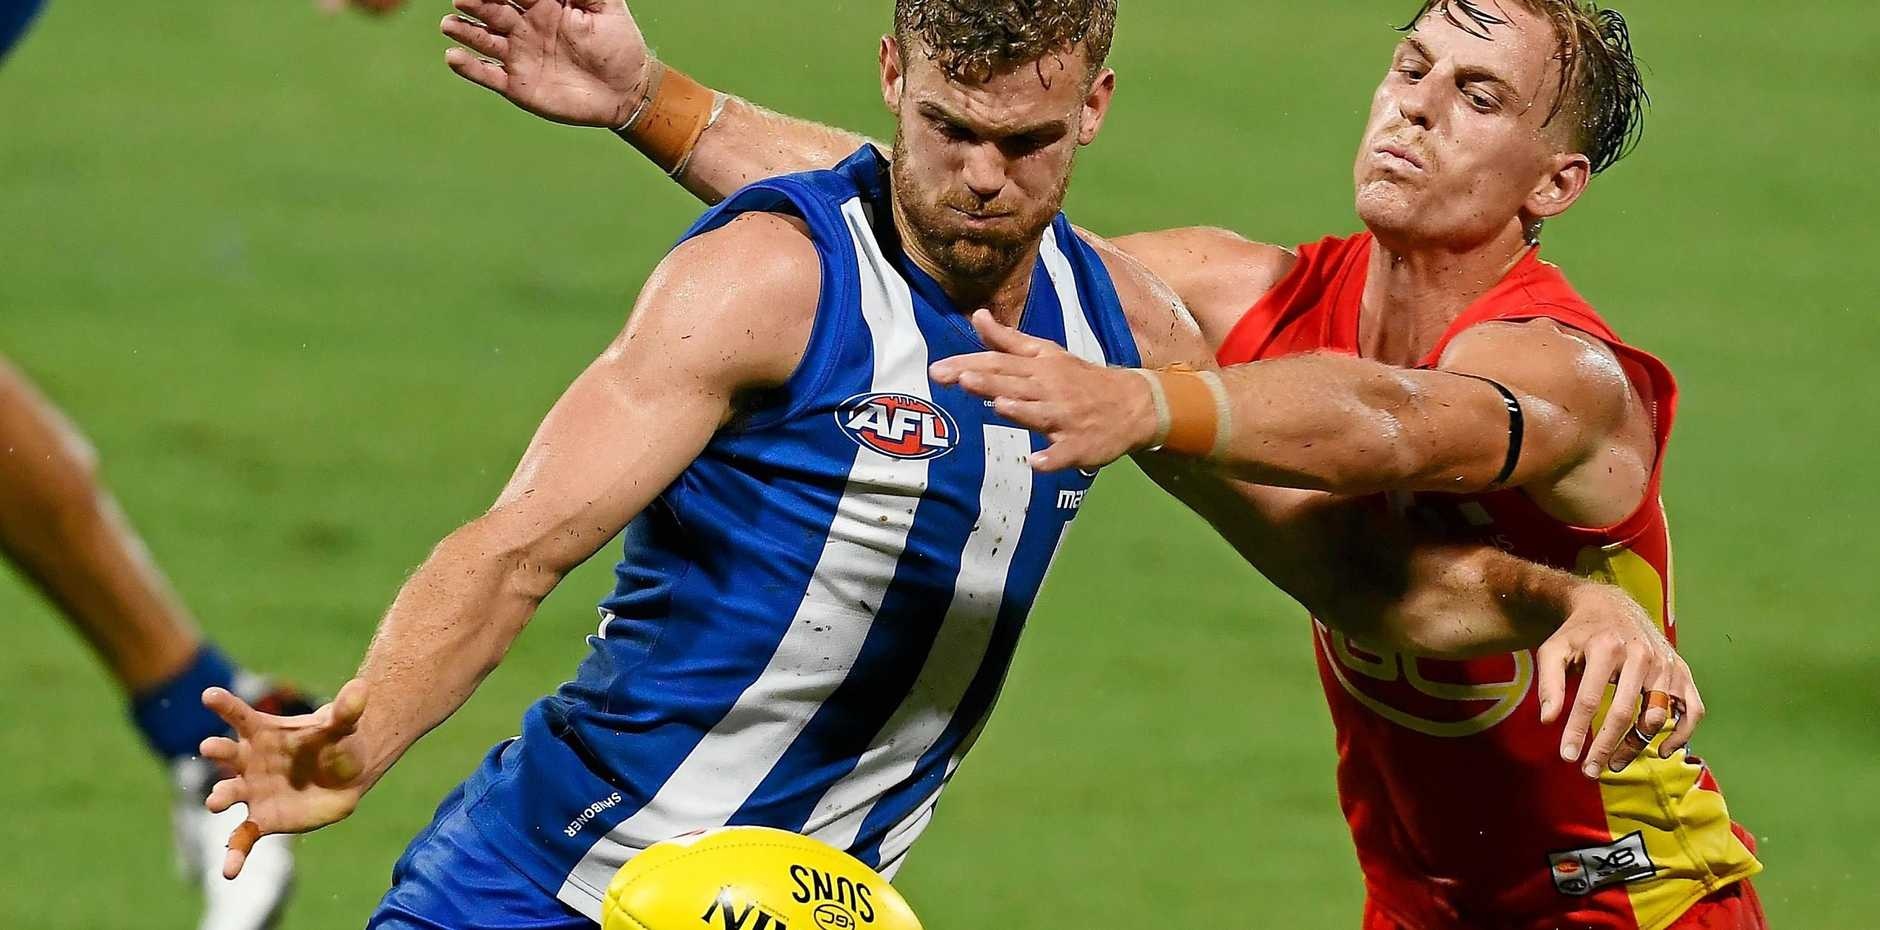 Darcy Macpherson tackles the Kangaroos' Ed Vickers-Willis in round one.